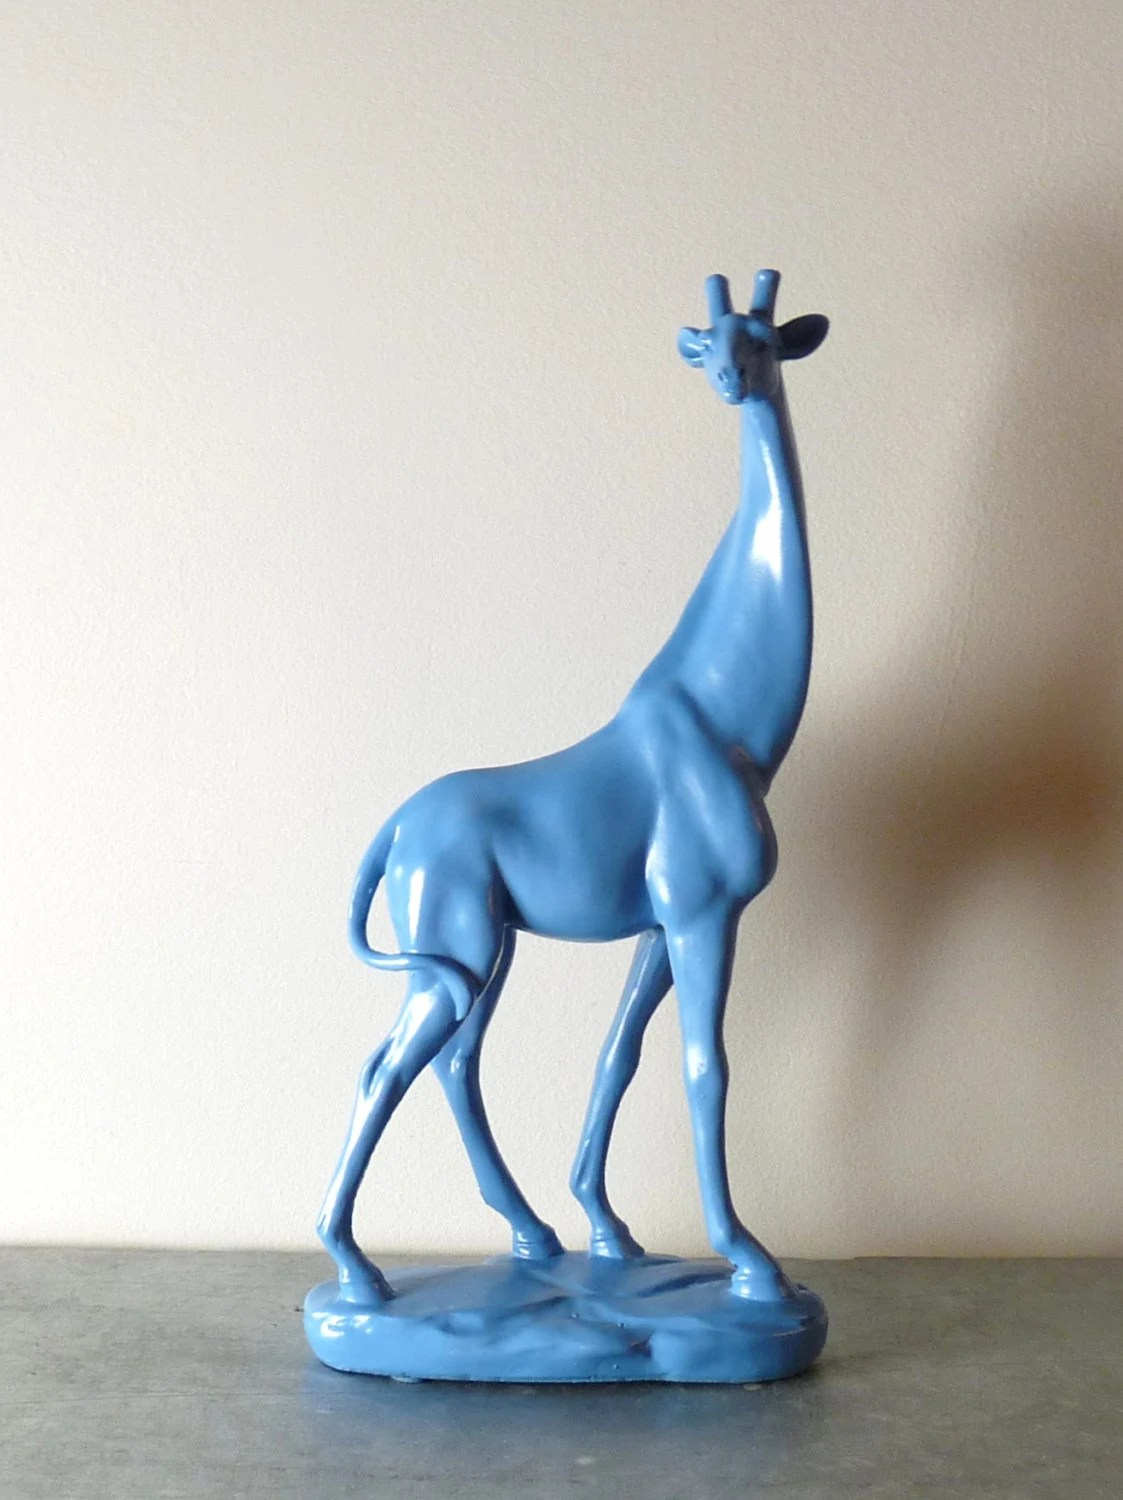 Animal Figurines Home Decor Giraffe Sculpture Figurine Giraffe Decor Animal Decor Home